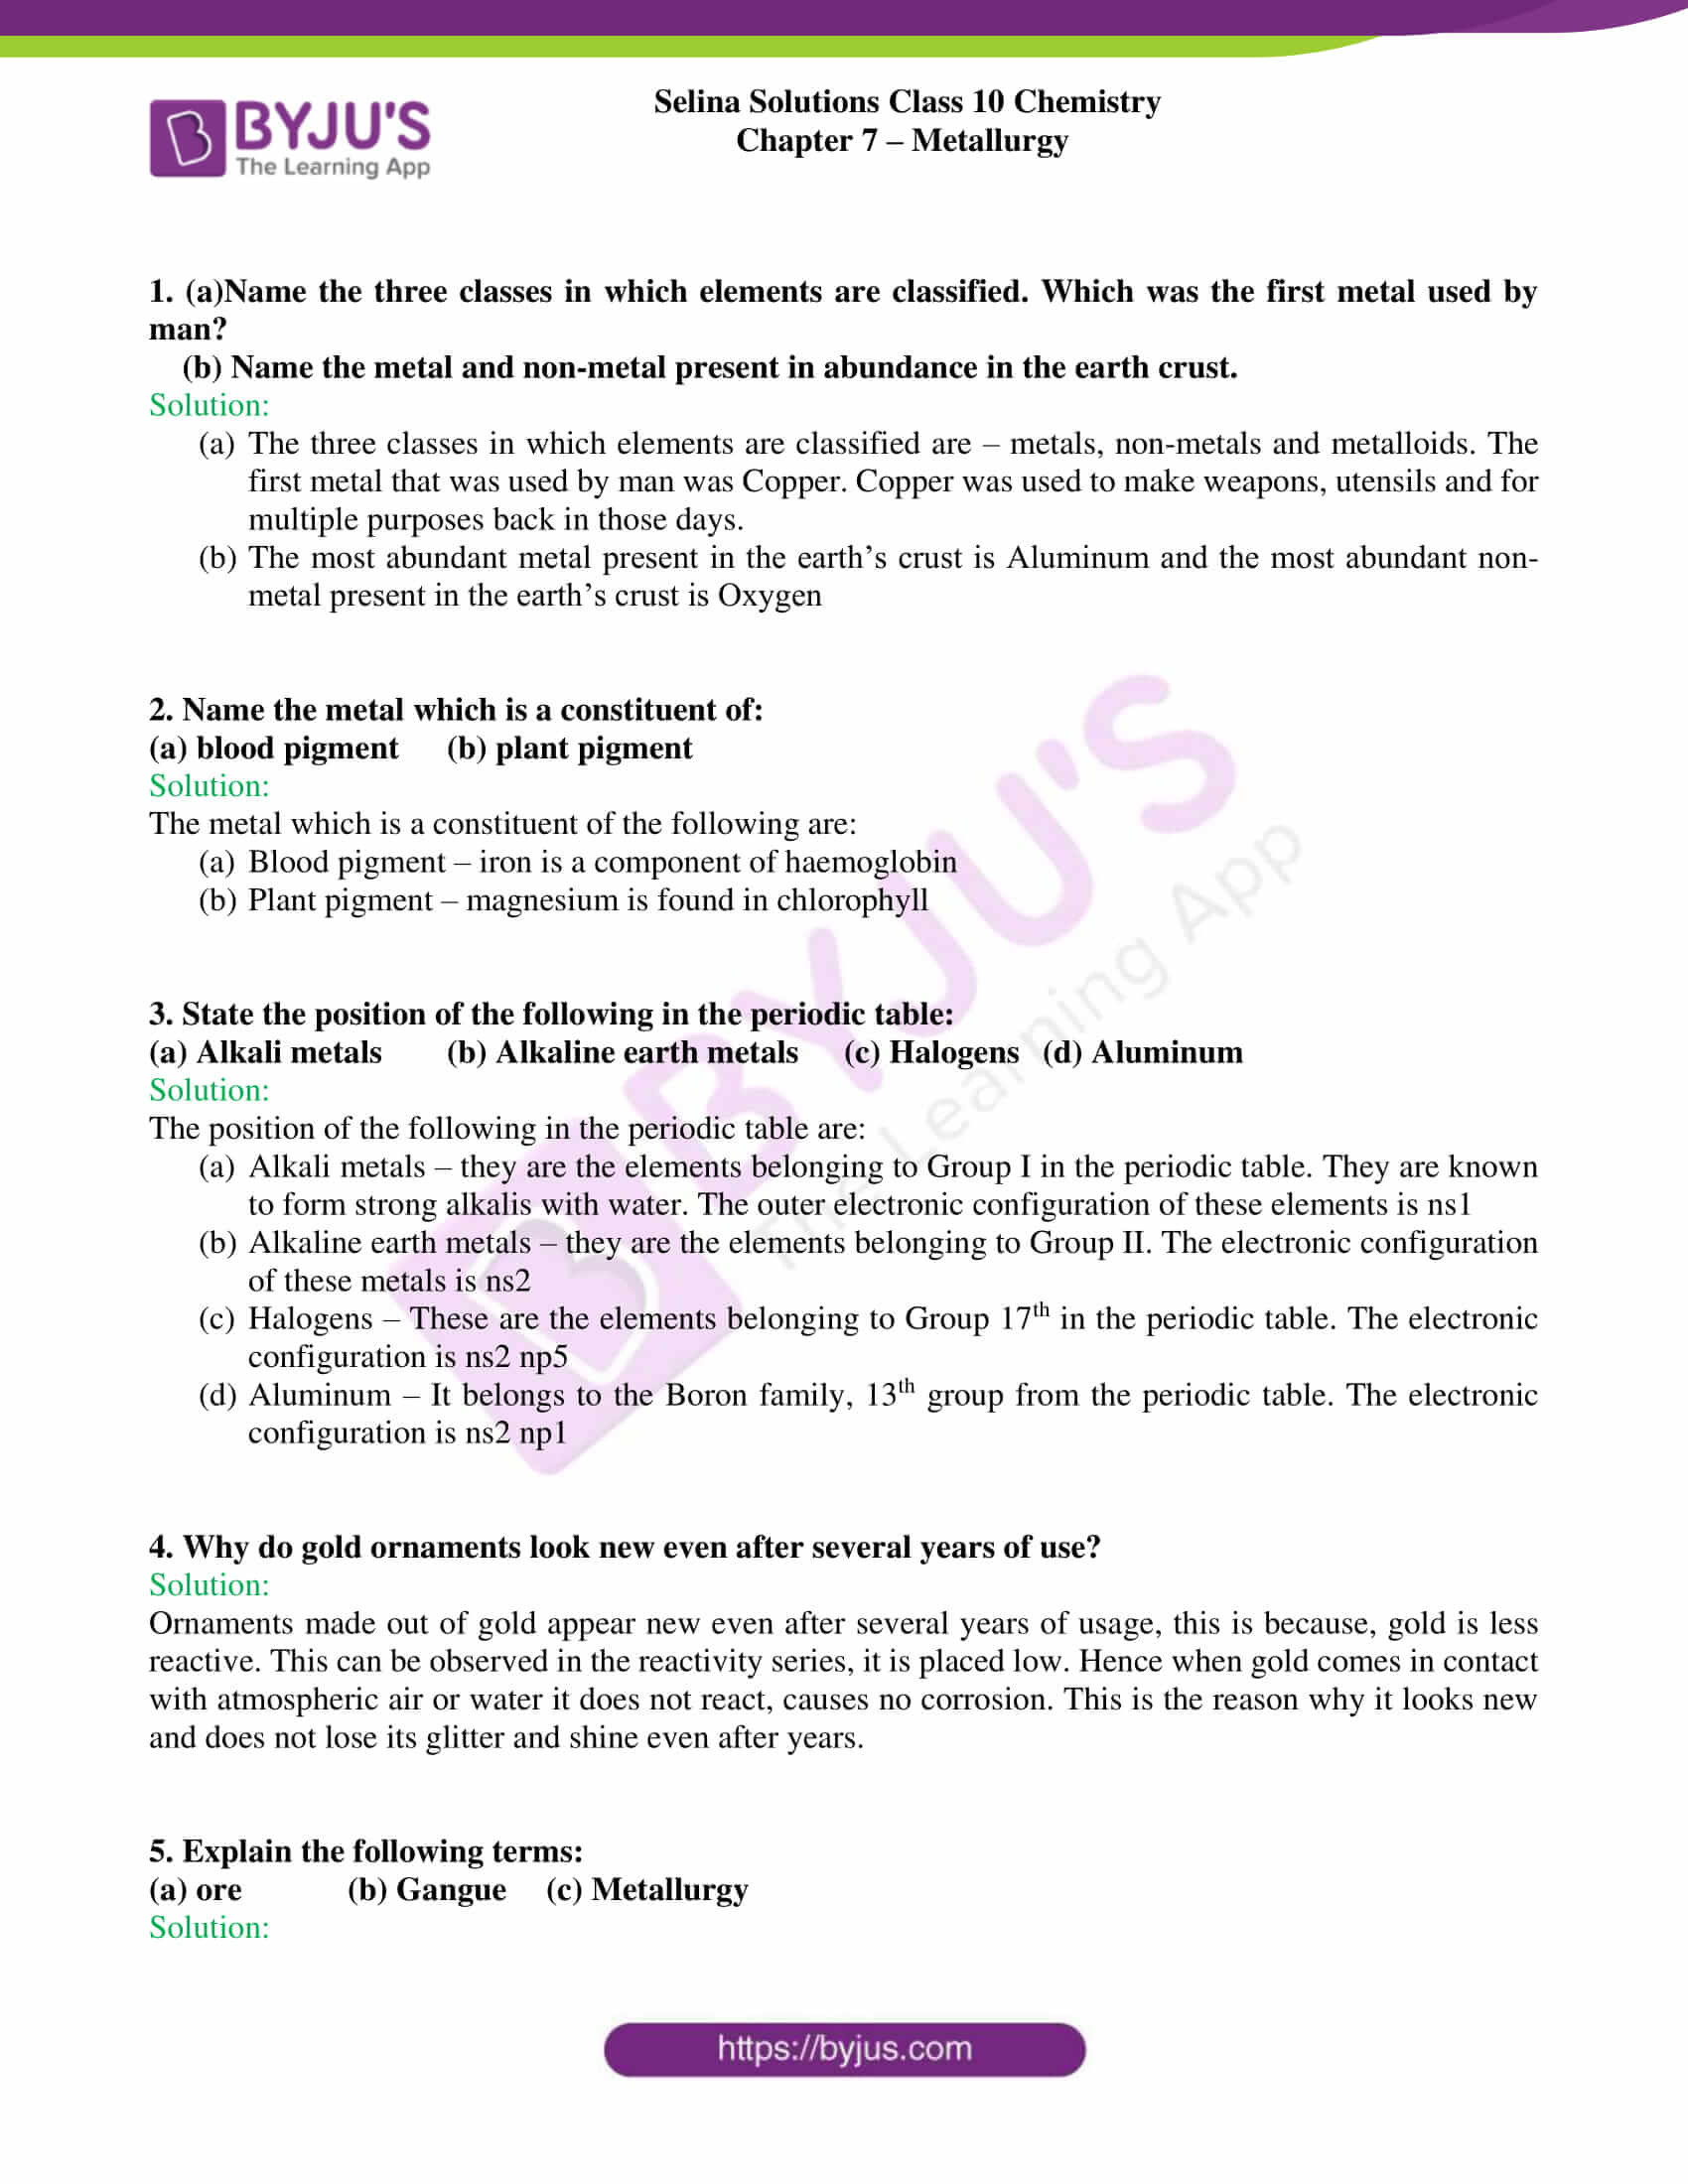 hight resolution of Selina Solutions Class 10 Concise Chemistry Chapter 7 Metallurgy -Download  Free PDF